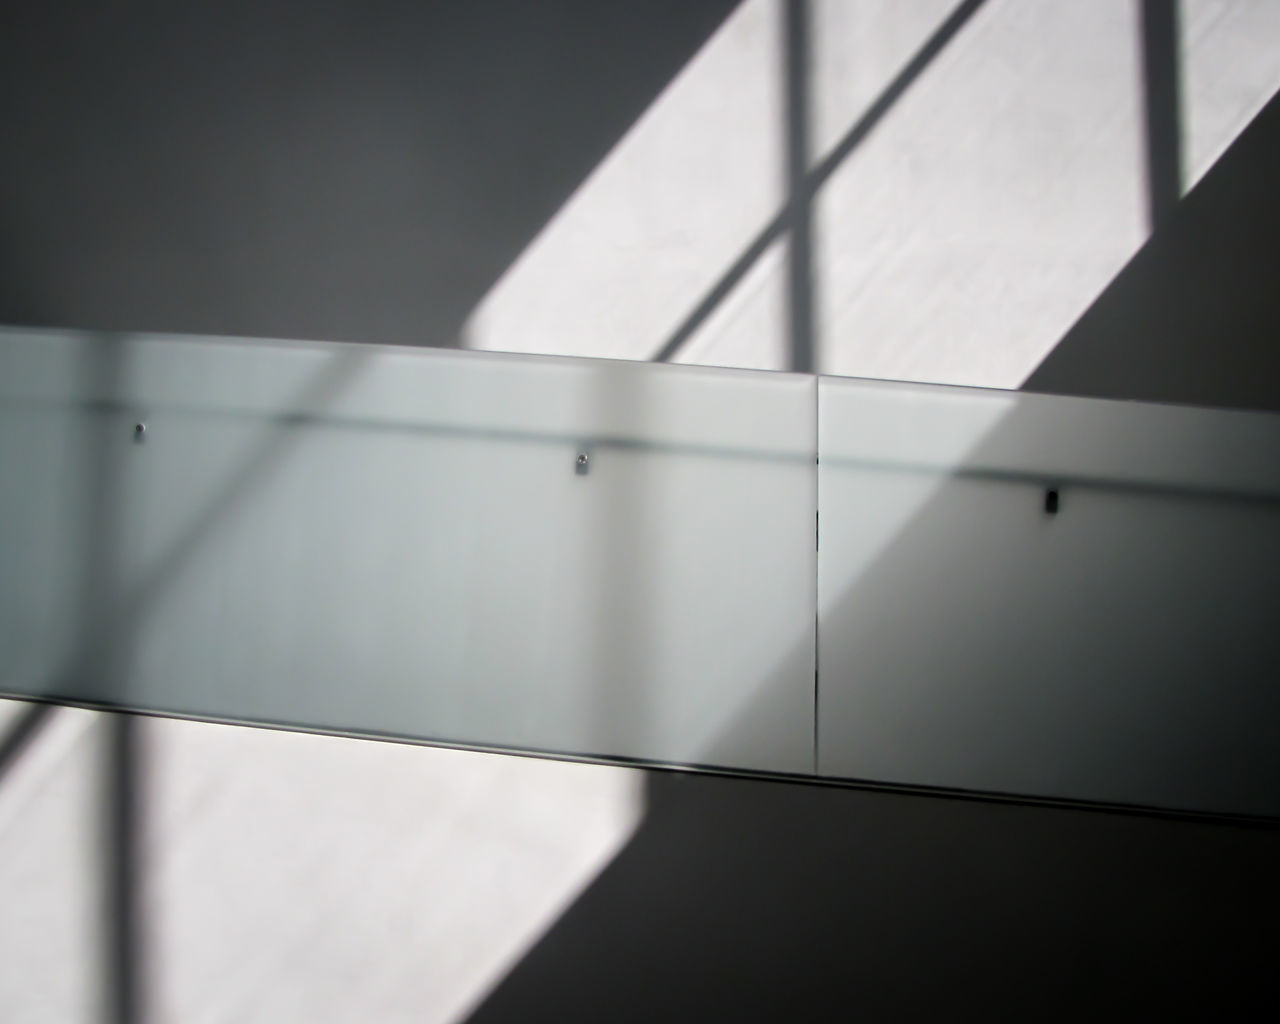 Architecture Backgrounds Built Structure Close-up Contrast Copy Space Day Geometry Indoors  Metal No People Shadow Shadows & Lights